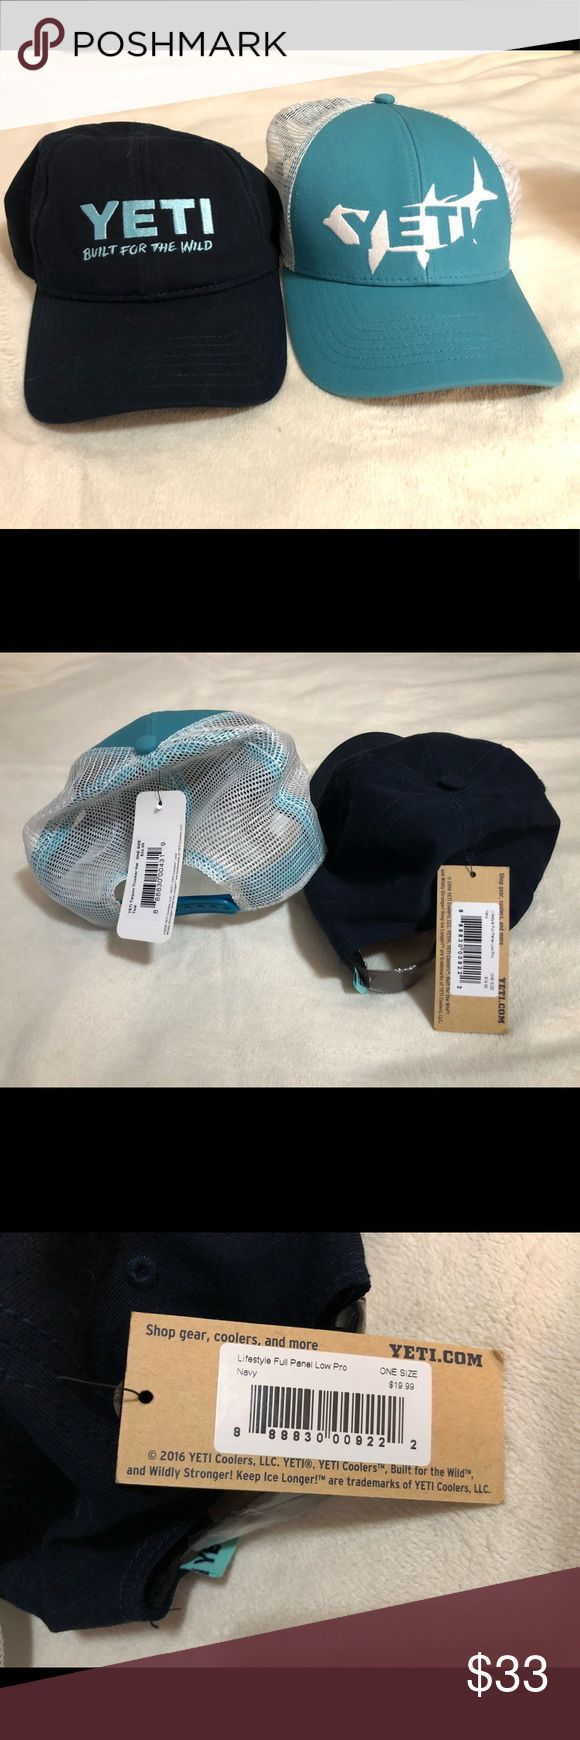 Yet hats ! NWT! Unisex Selling as set of two ! Brand new with tags ! yeti Accessories Hats